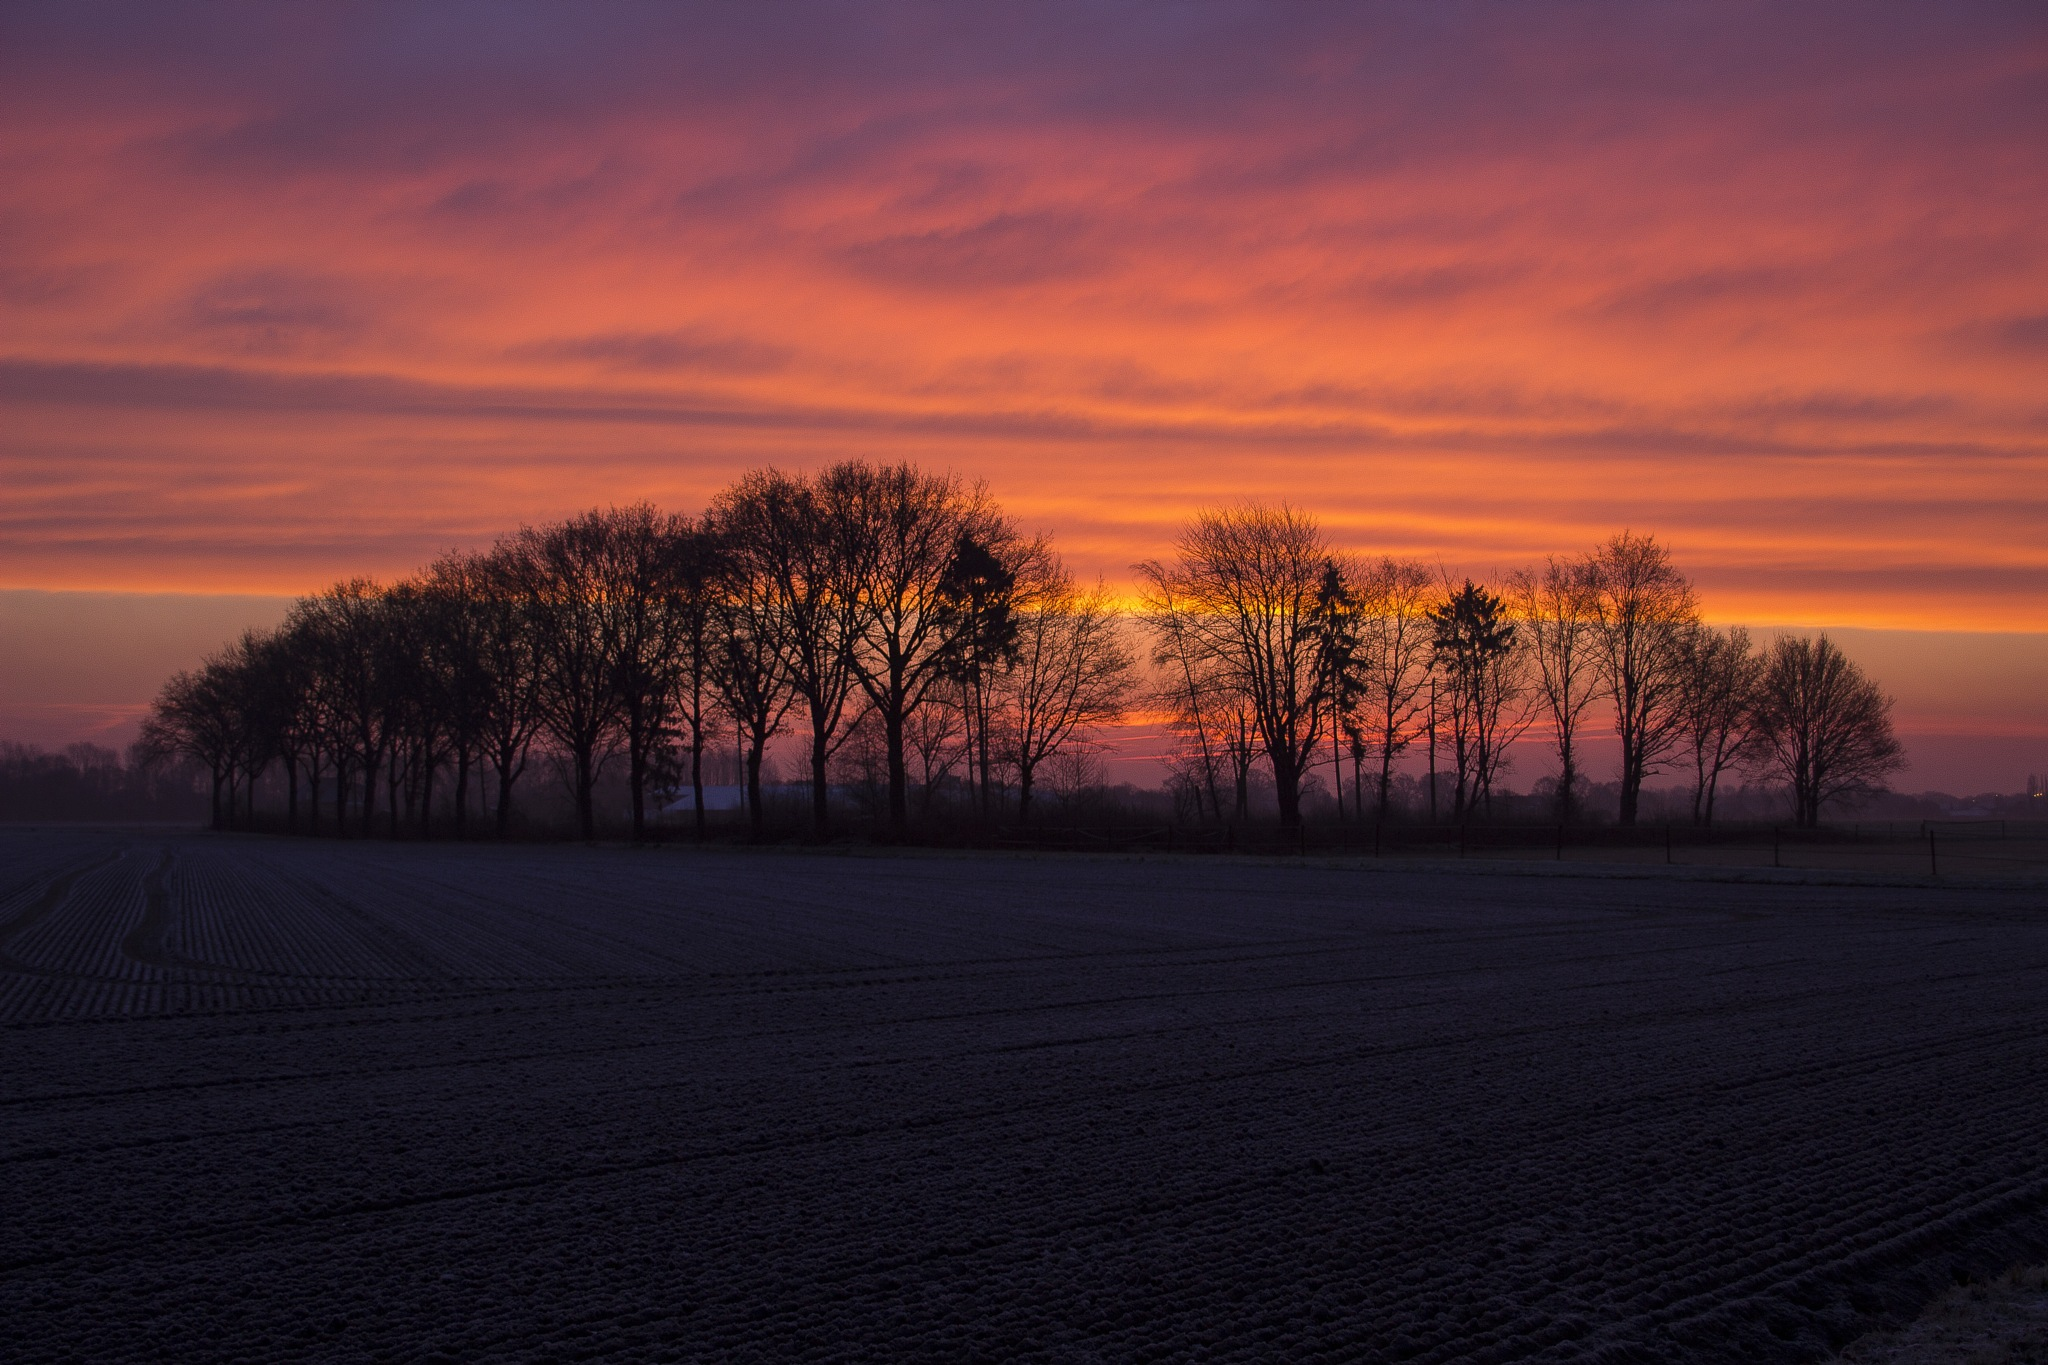 Early in the morning by hennievandercruijsen